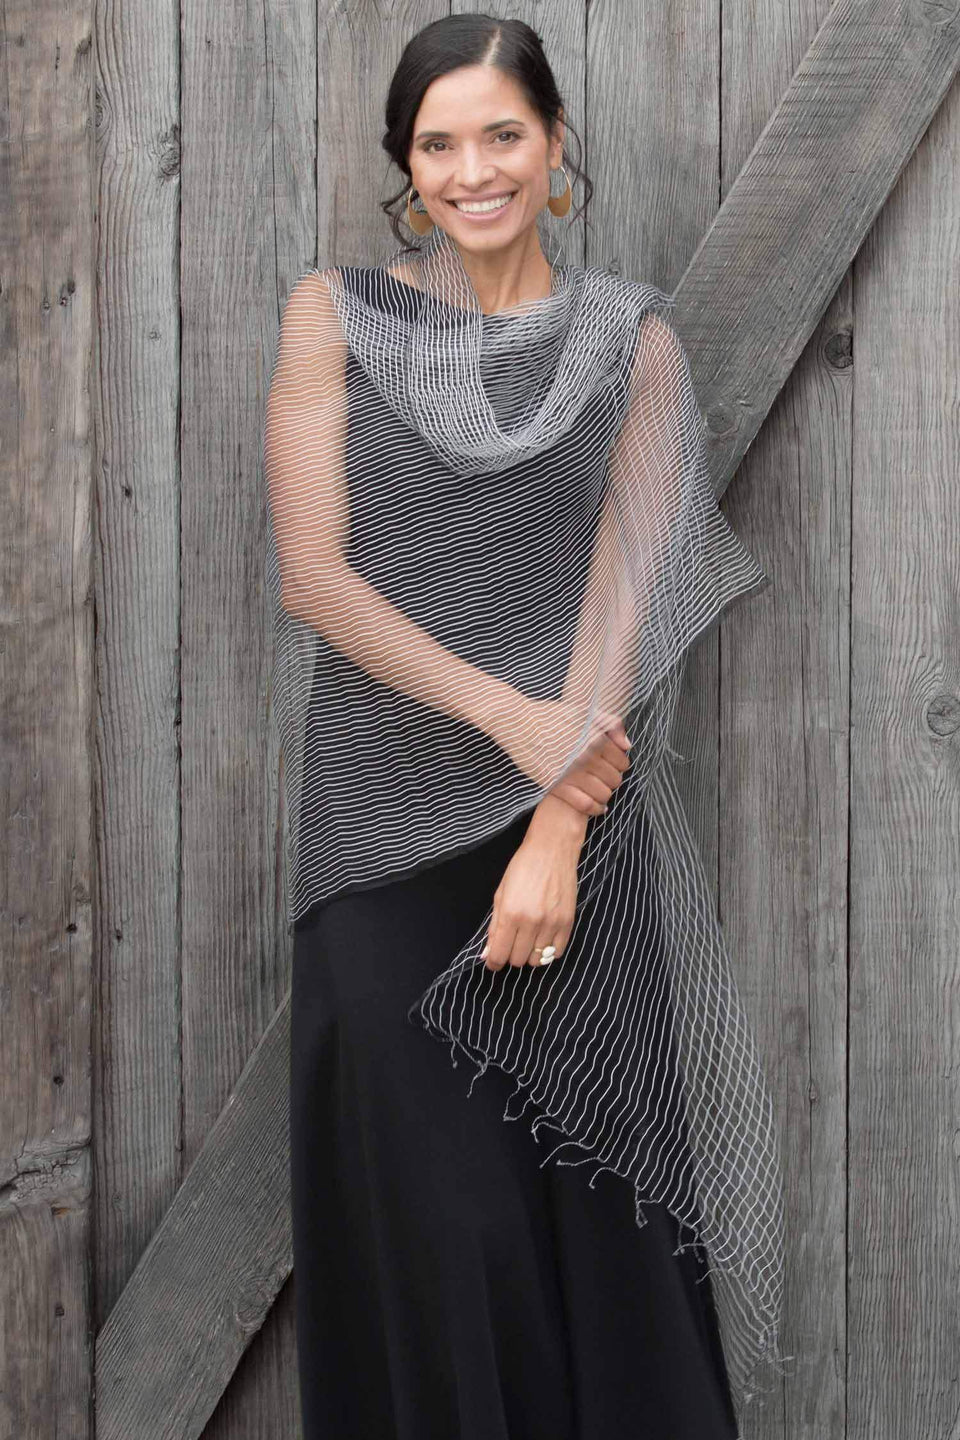 Silk Parallel Structure Scarf in Black and White